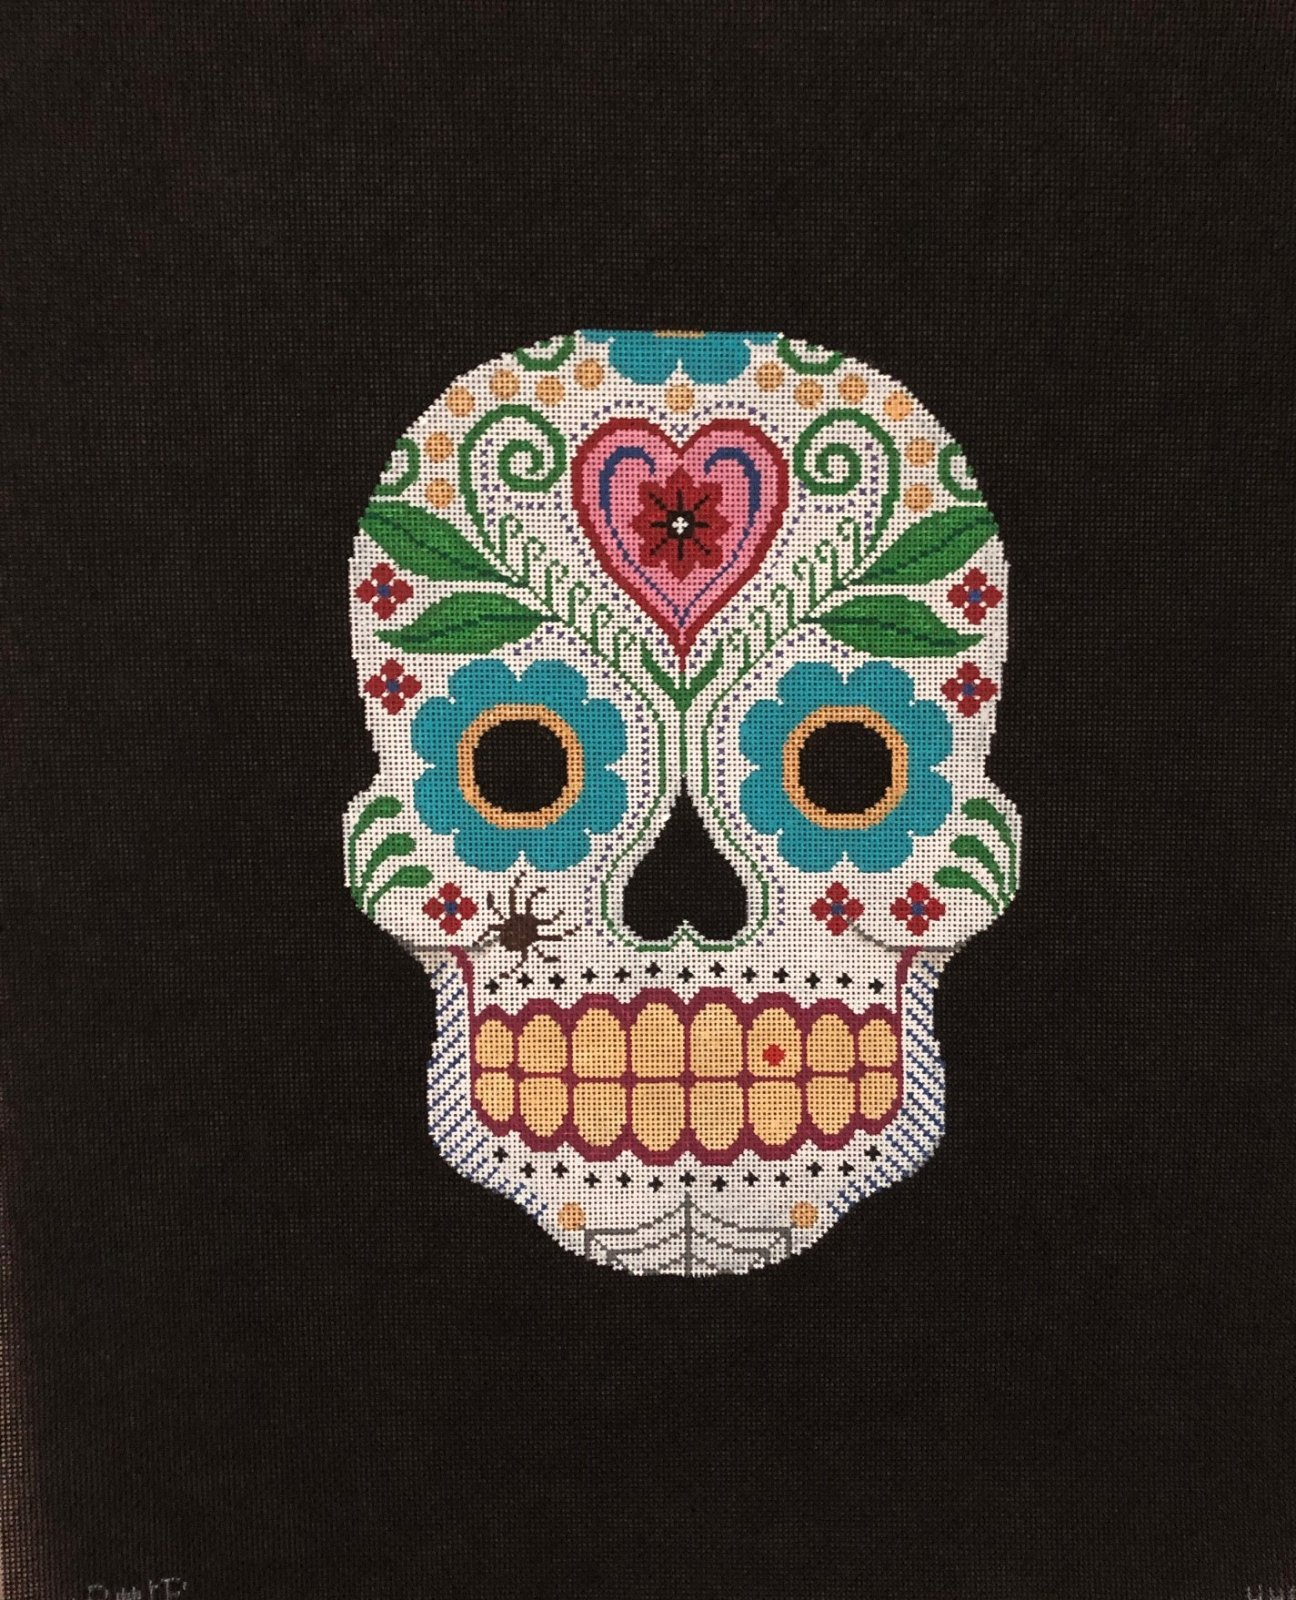 H040 - SUGAR SKULL WITH HEARTS & FLOWERS